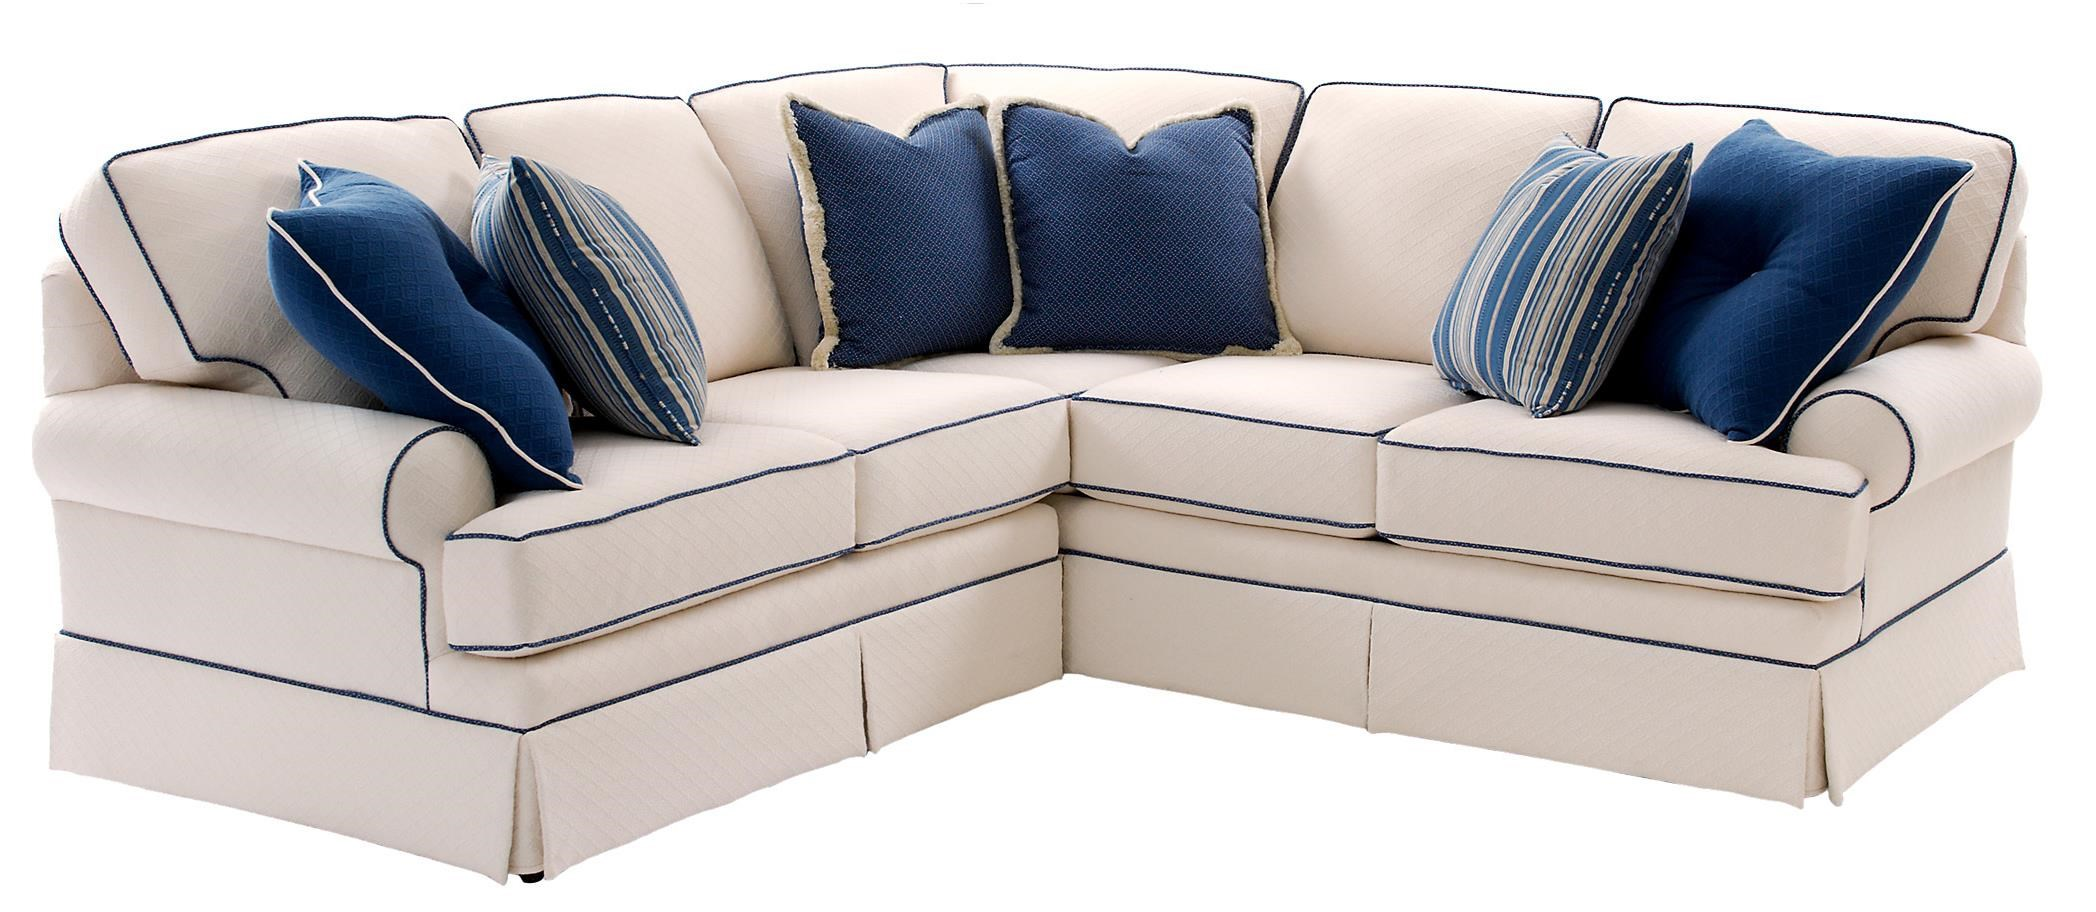 Smith Brothers Build Your Own (5000 Series)Sectional ...